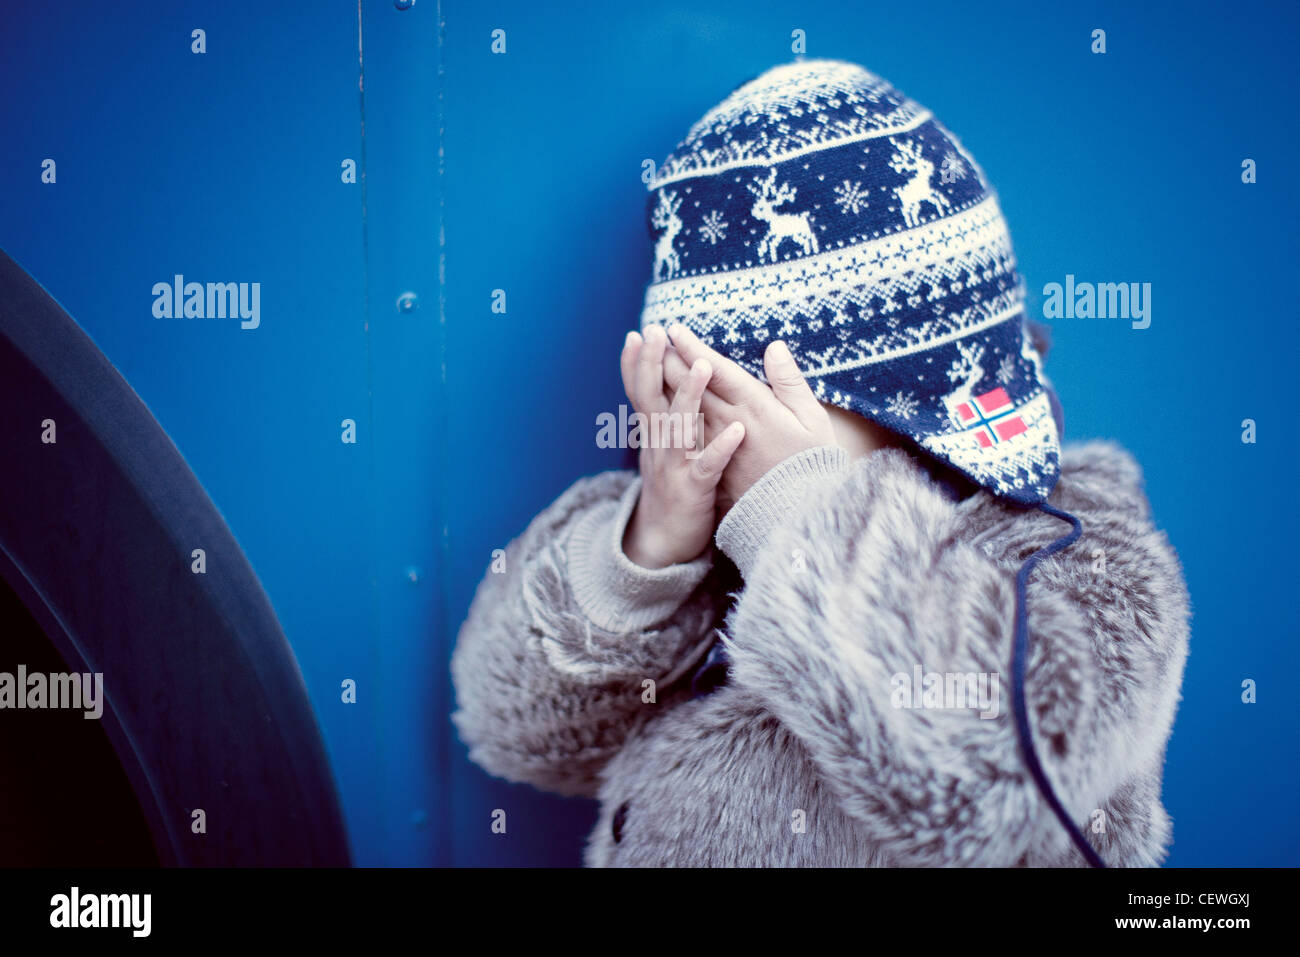 Little girl covering face with hands - Stock Image